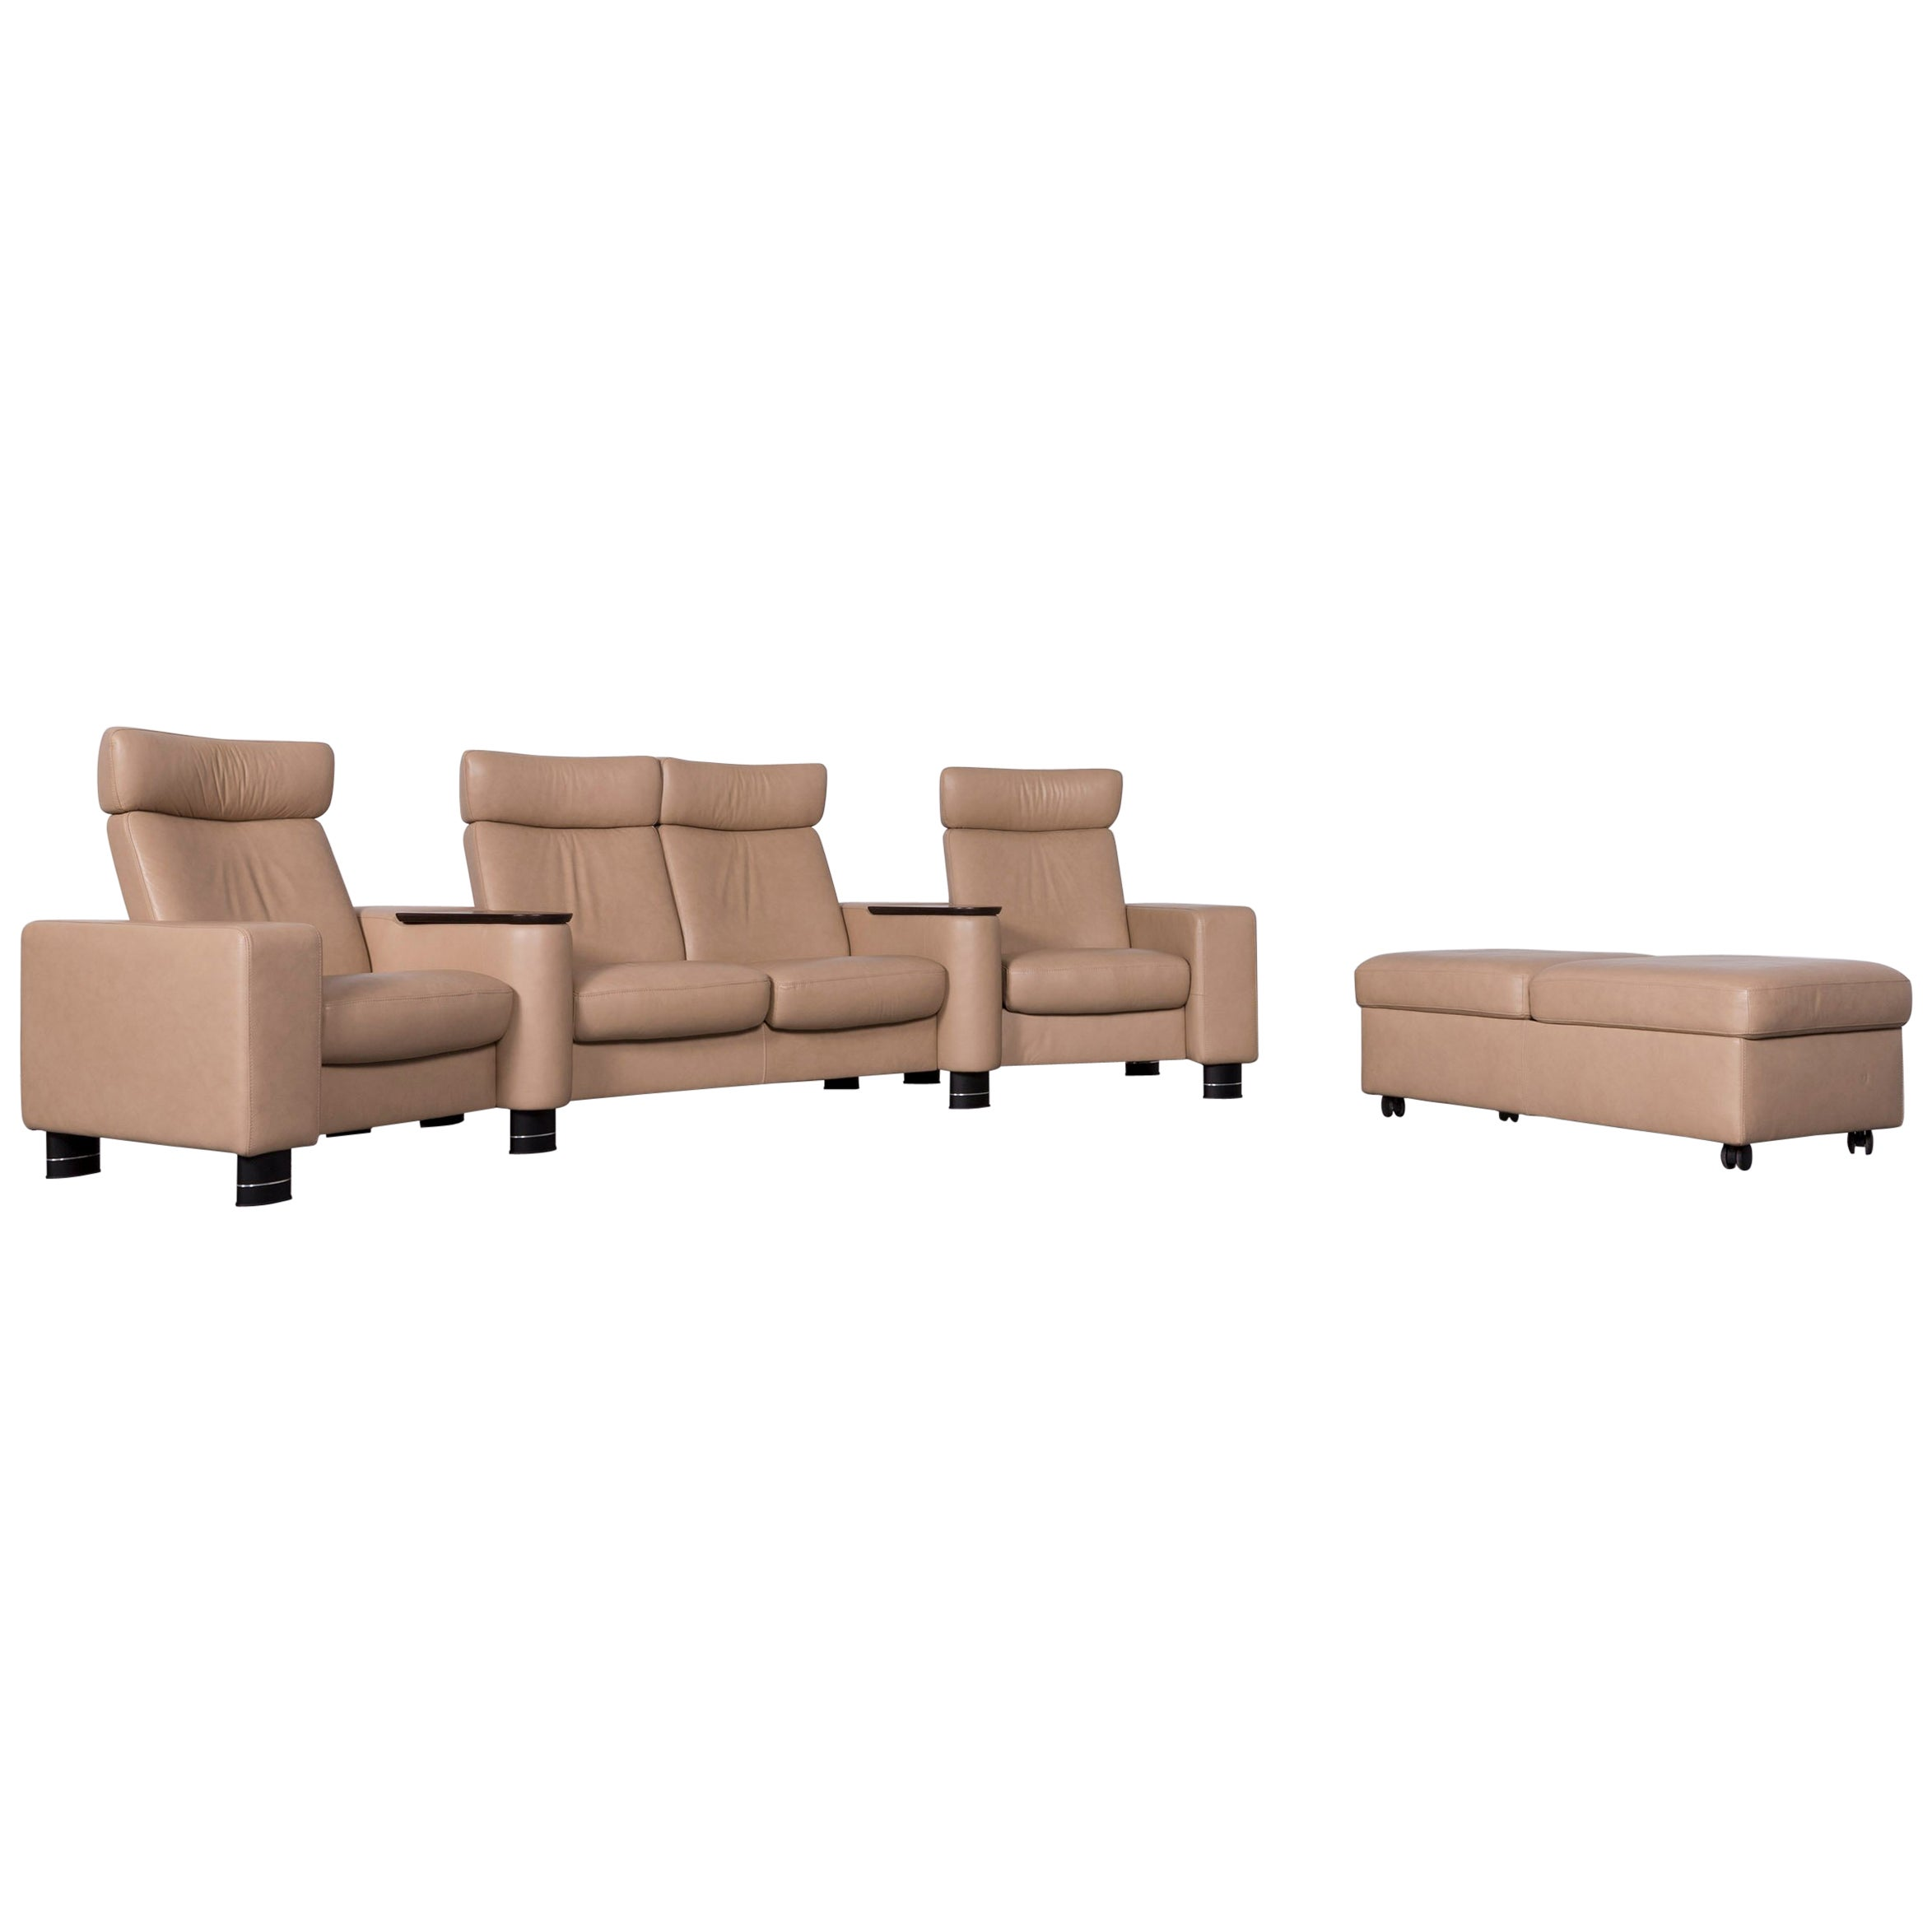 Ekornes Stressless Designer Leather Sofa Beige Four Seat Recliner Couch For Sale At 1stdibs